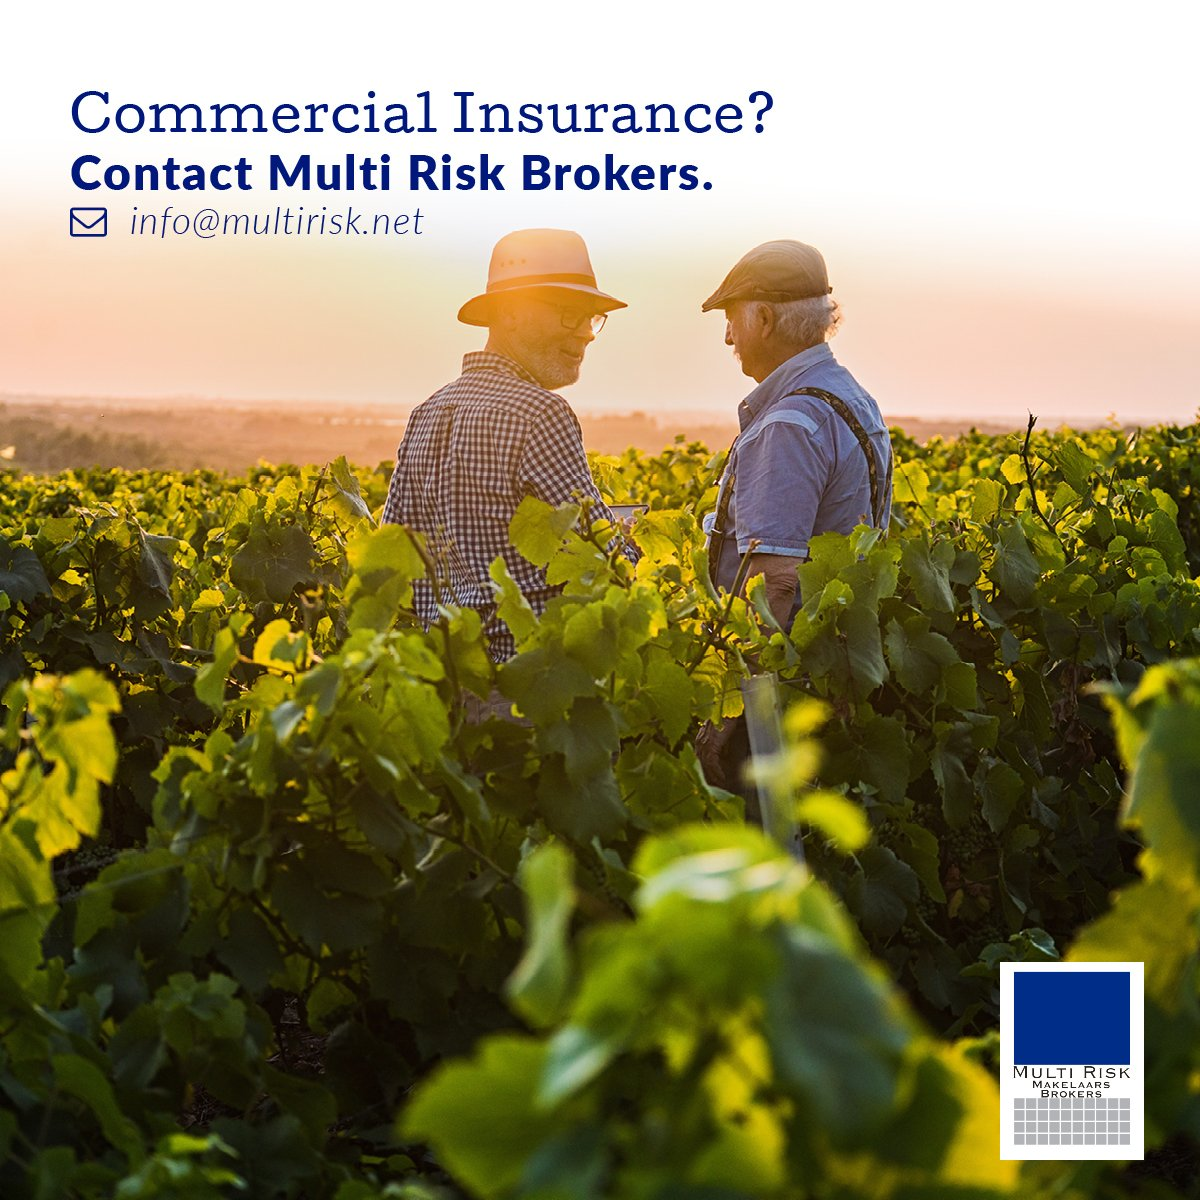 Cover for potential losses through unforeseen circumstances. Be ready! http://www.multirisk.net  #CommercialInsurance #BusinessCover pic.twitter.com/LjTlXhUEHF